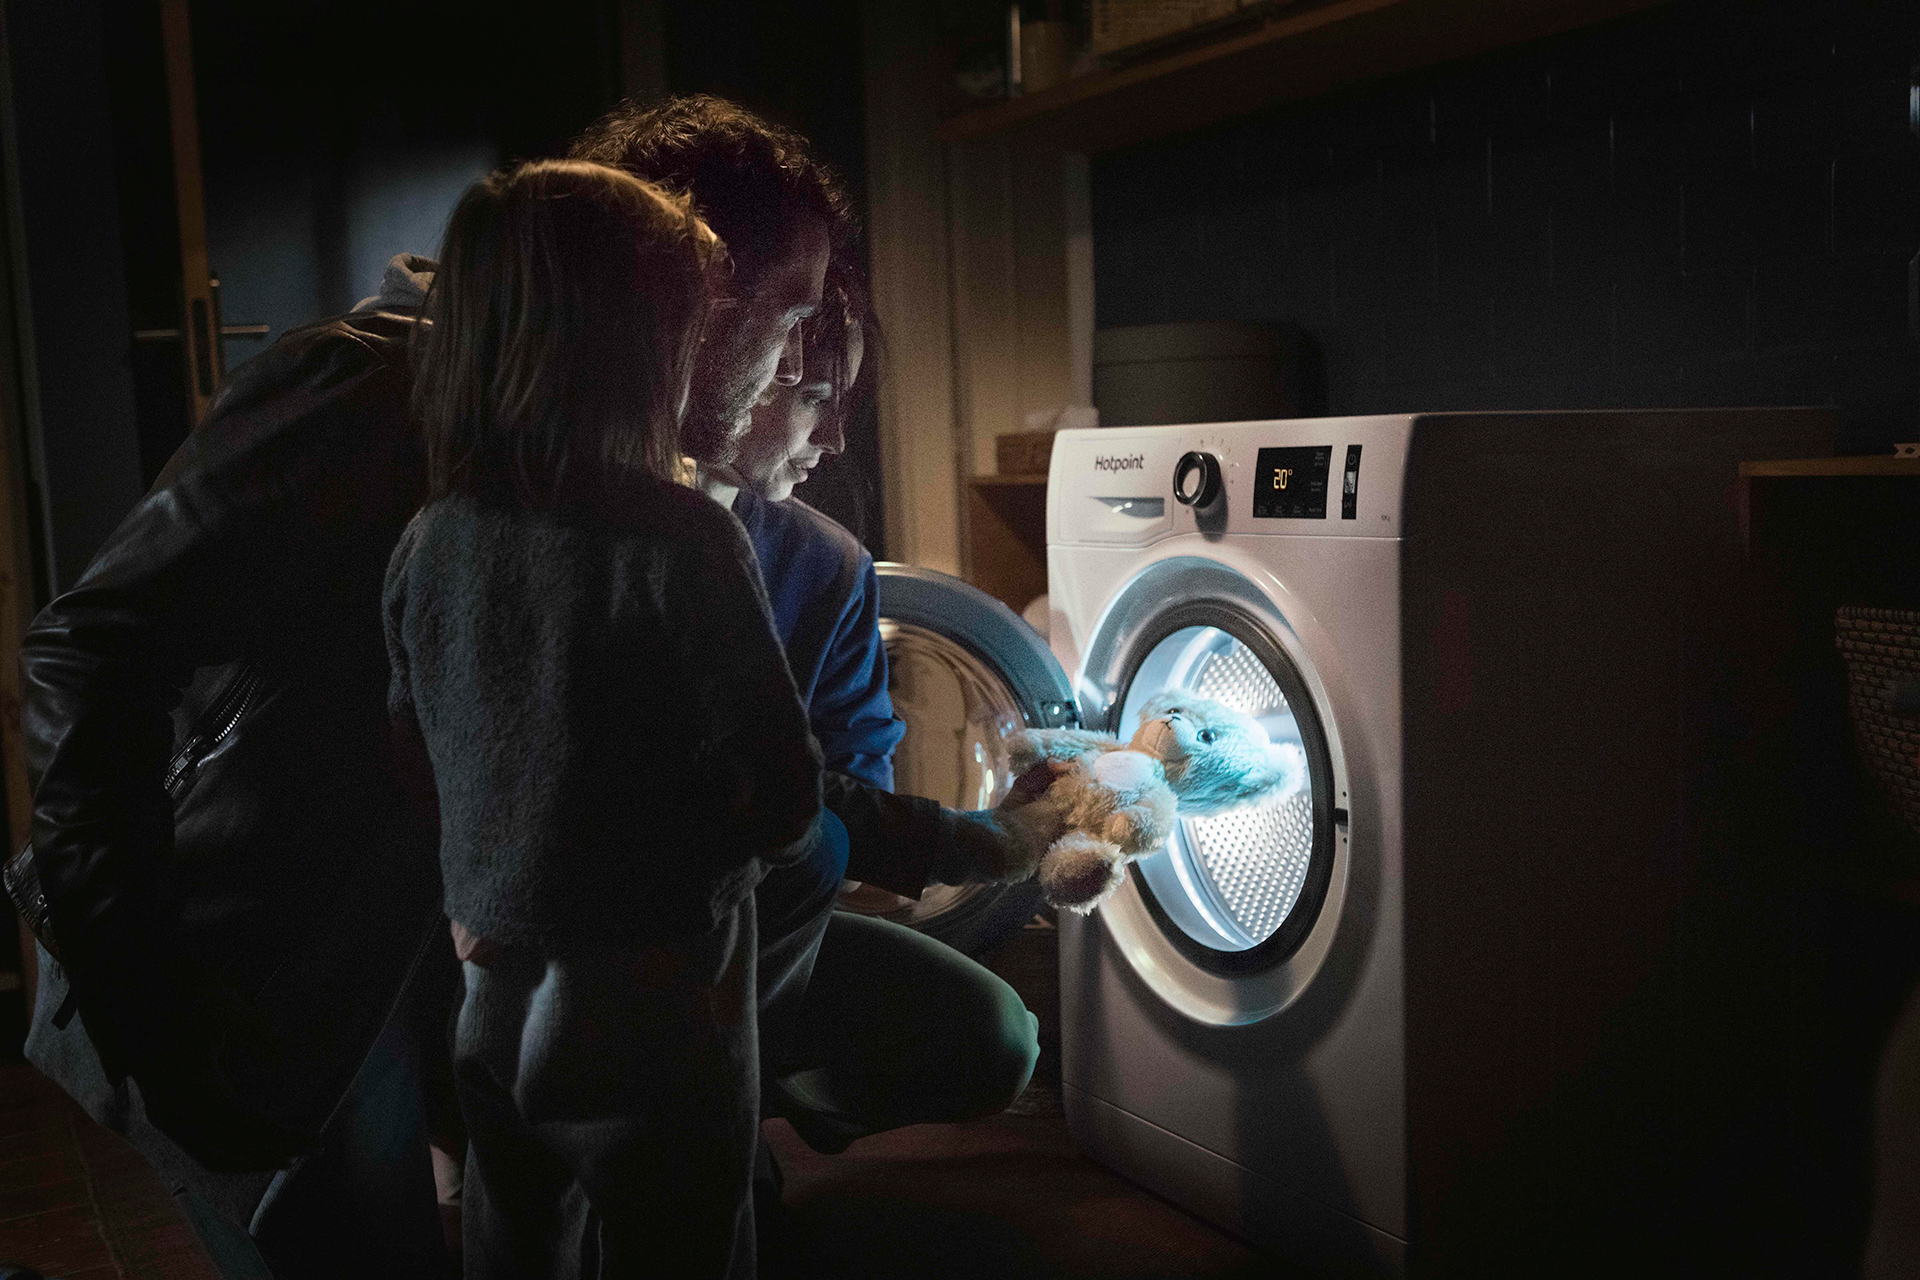 Hotpoint's Active Washing Machine 2019 Campaign launched in the UK